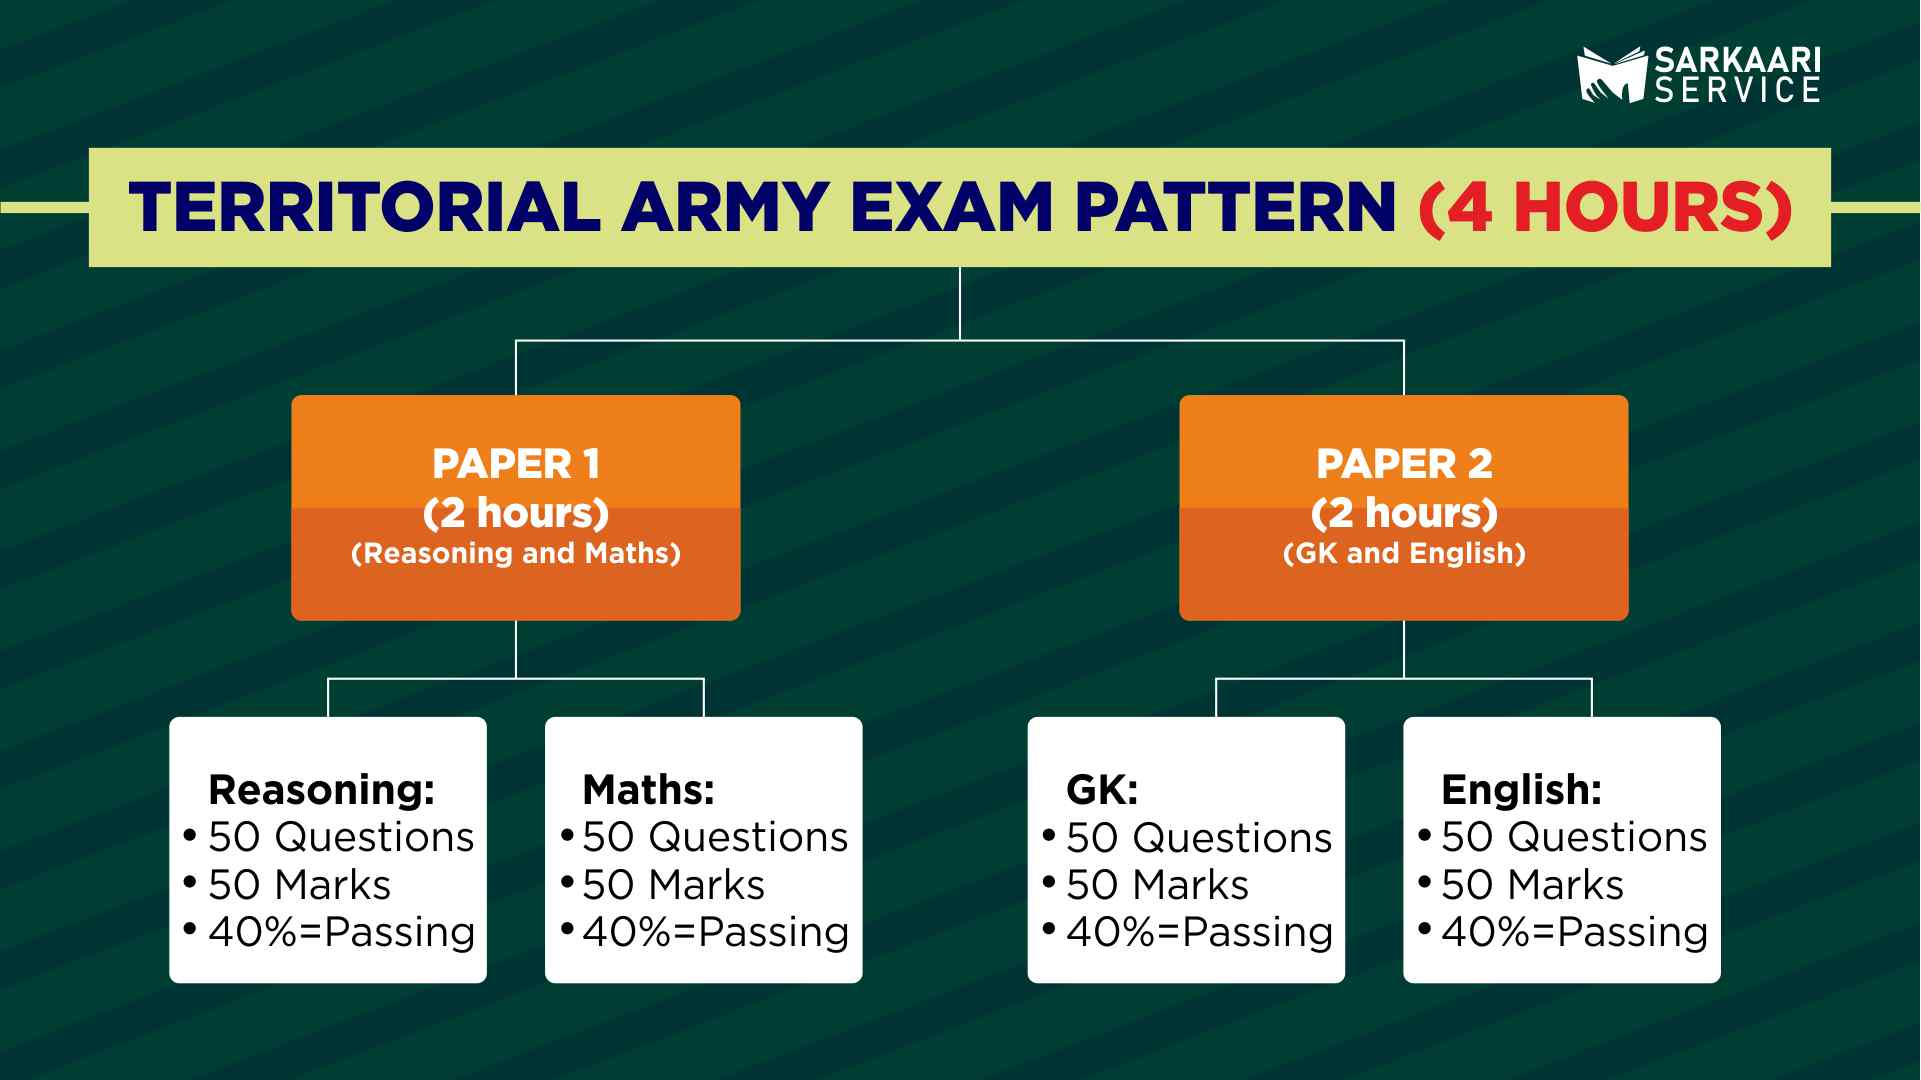 Territorial Army Exam Pattern